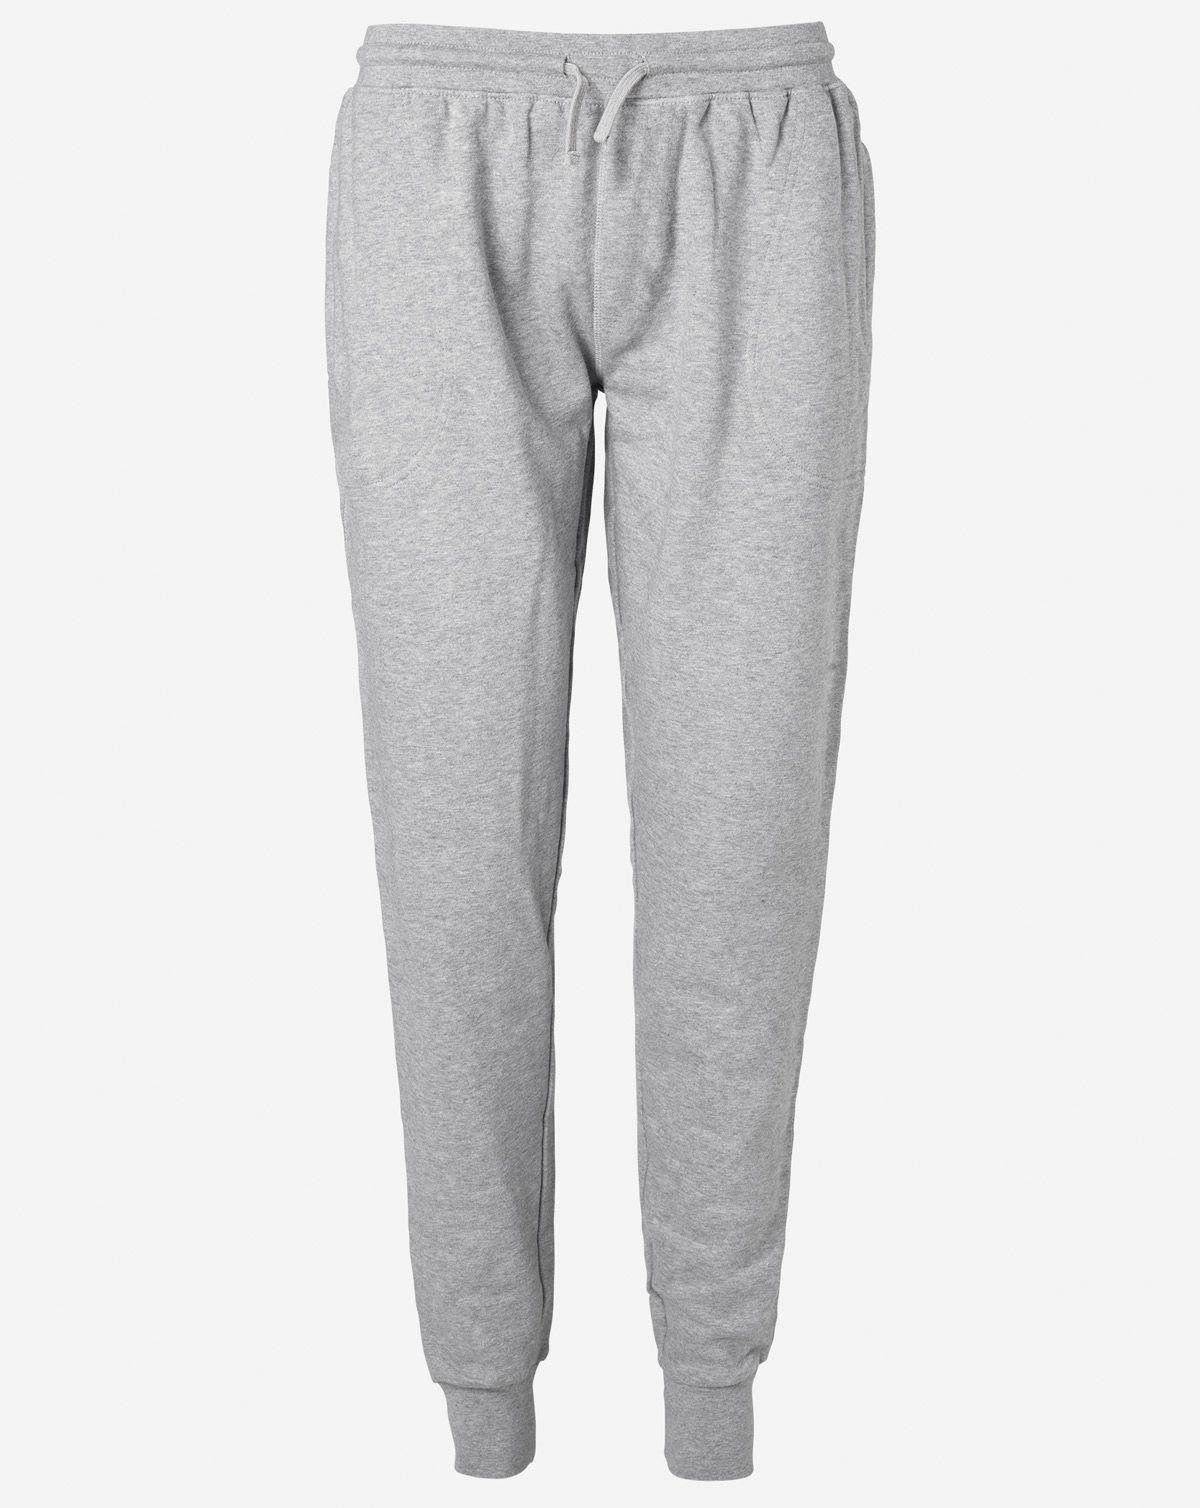 Image of   Neutral Økologisk Unisex Sweatpants w/ Cuff and Zip (Grå Meleret, 2XL)